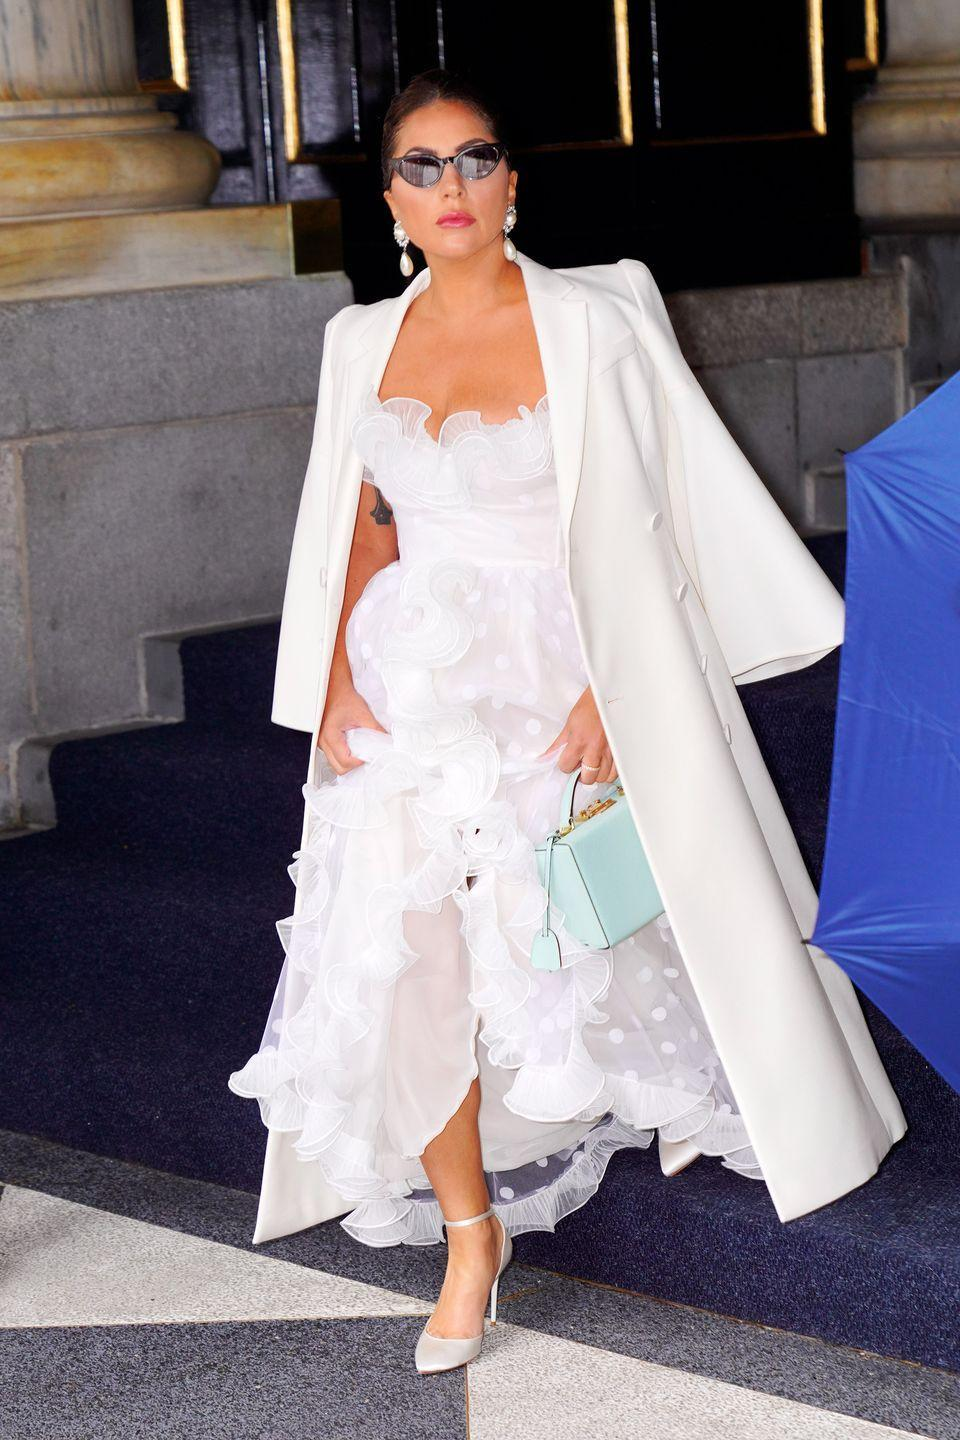 """<p>The singer was photographed leaving a hotel in NYC on June 29 wearing a white tulle Giambattista Valli dress with a scalloped skirt. </p><p>The bridal-esque look was styled with a long white blazer coat, a mint green-coloured bag, white heels and pearl drop earrings.</p><p>While Gaga isn't planning to walk down the aisle to marry her boyfriend Michael Polansky anytime soon, as far as we know, we can't get enough of this chic wedding appropriate number.</p><p><a class=""""link rapid-noclick-resp"""" href=""""https://www.elle.com/uk/fashion/what-to-wear/articles/g31653/modern-spring-wedding-dresses/"""" rel=""""nofollow noopener"""" target=""""_blank"""" data-ylk=""""slk:SHOP MODERN WEDDING DRESSES"""">SHOP MODERN WEDDING DRESSES</a></p>"""